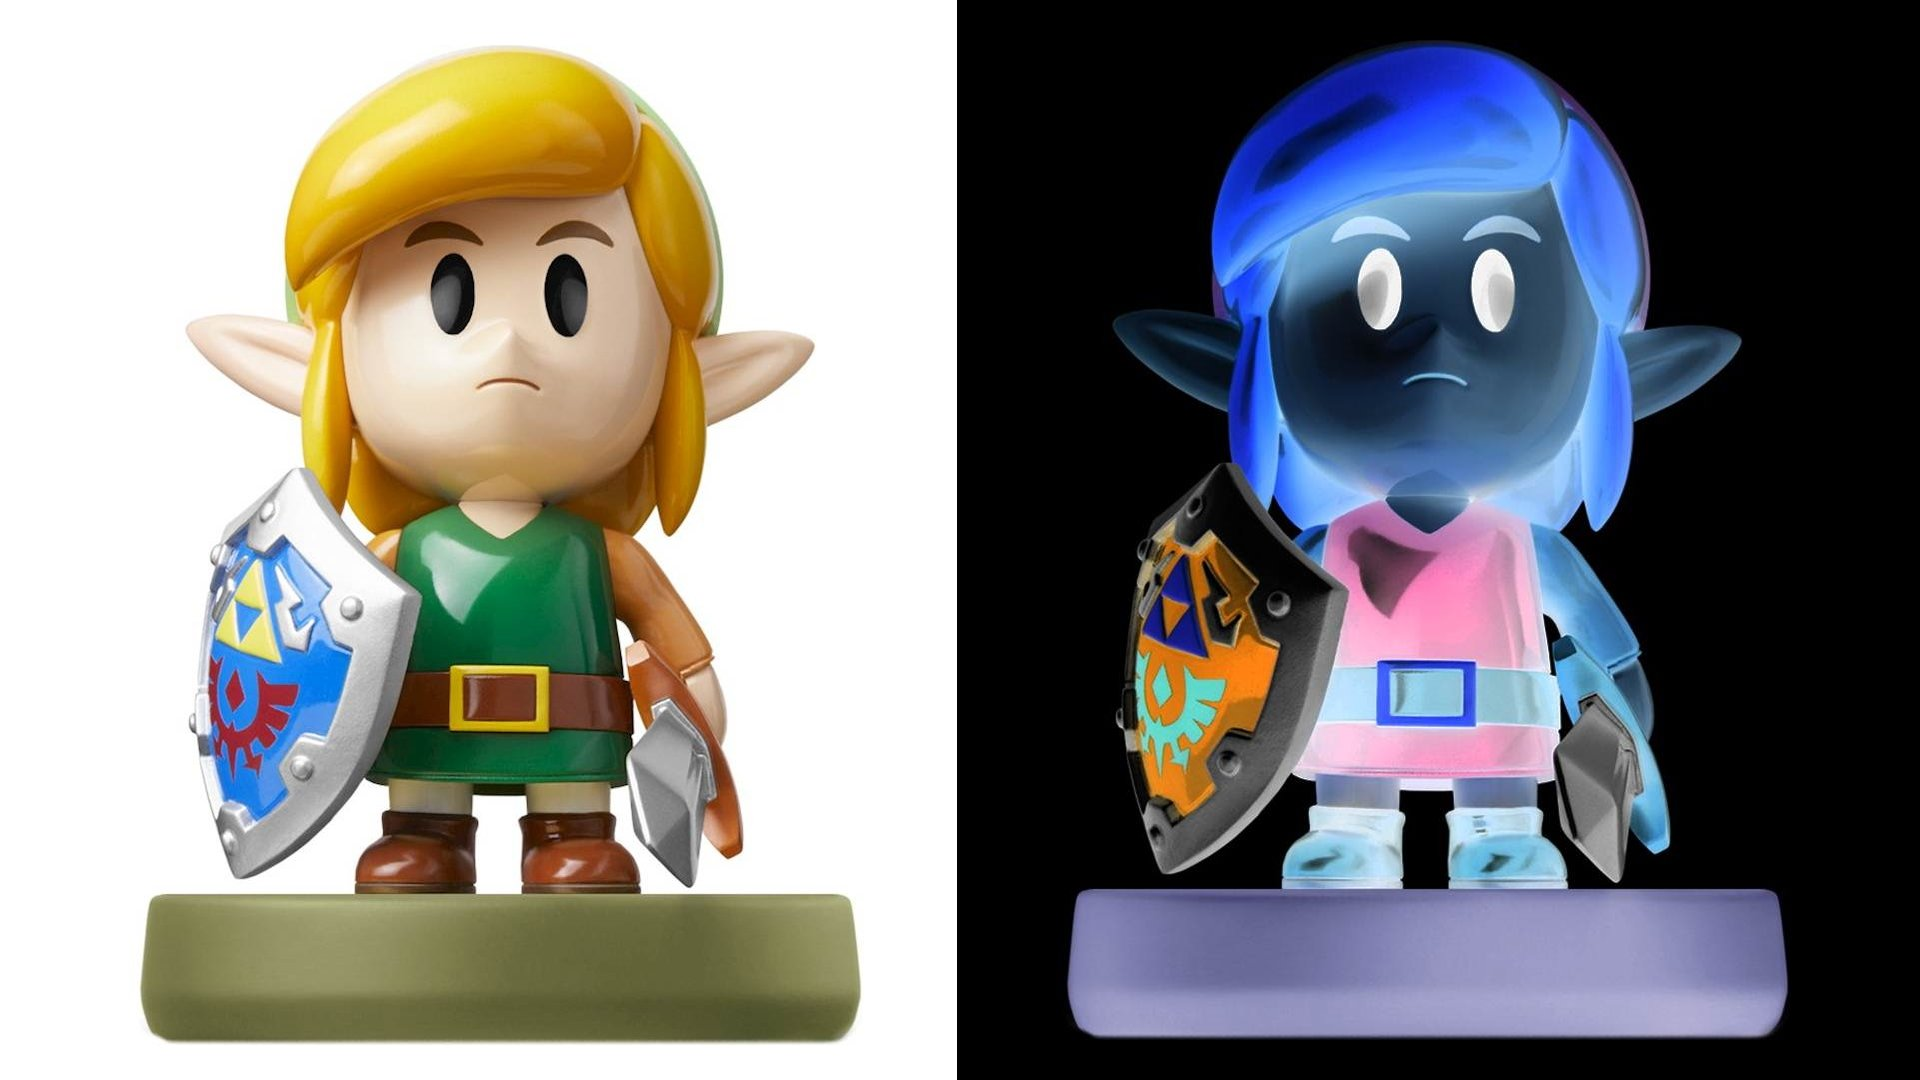 Adorable Link S Awakening Amiibo Will Summon Shadow Link To